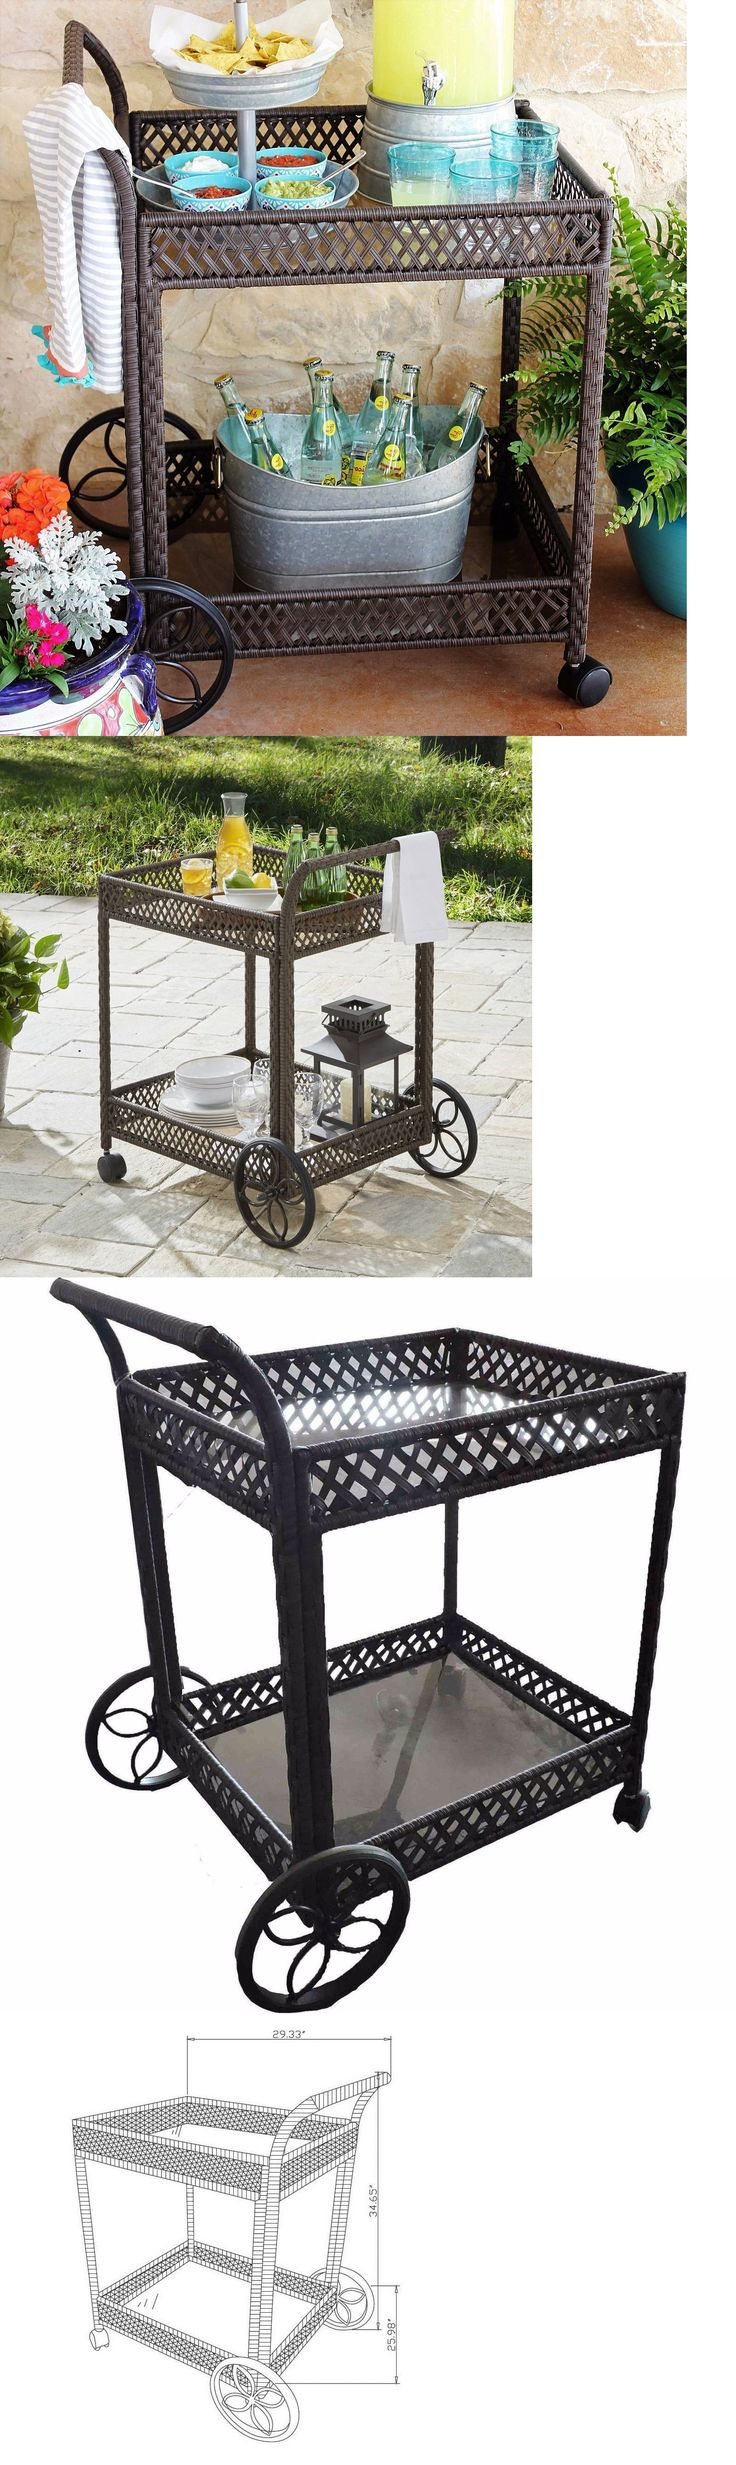 Outdoor buffet table serving cart as well century modern console table - Bar Carts And Serving Carts 183320 Patio Wicker Serving Cart Indoor Outdoor Kitchen Bar Dinner